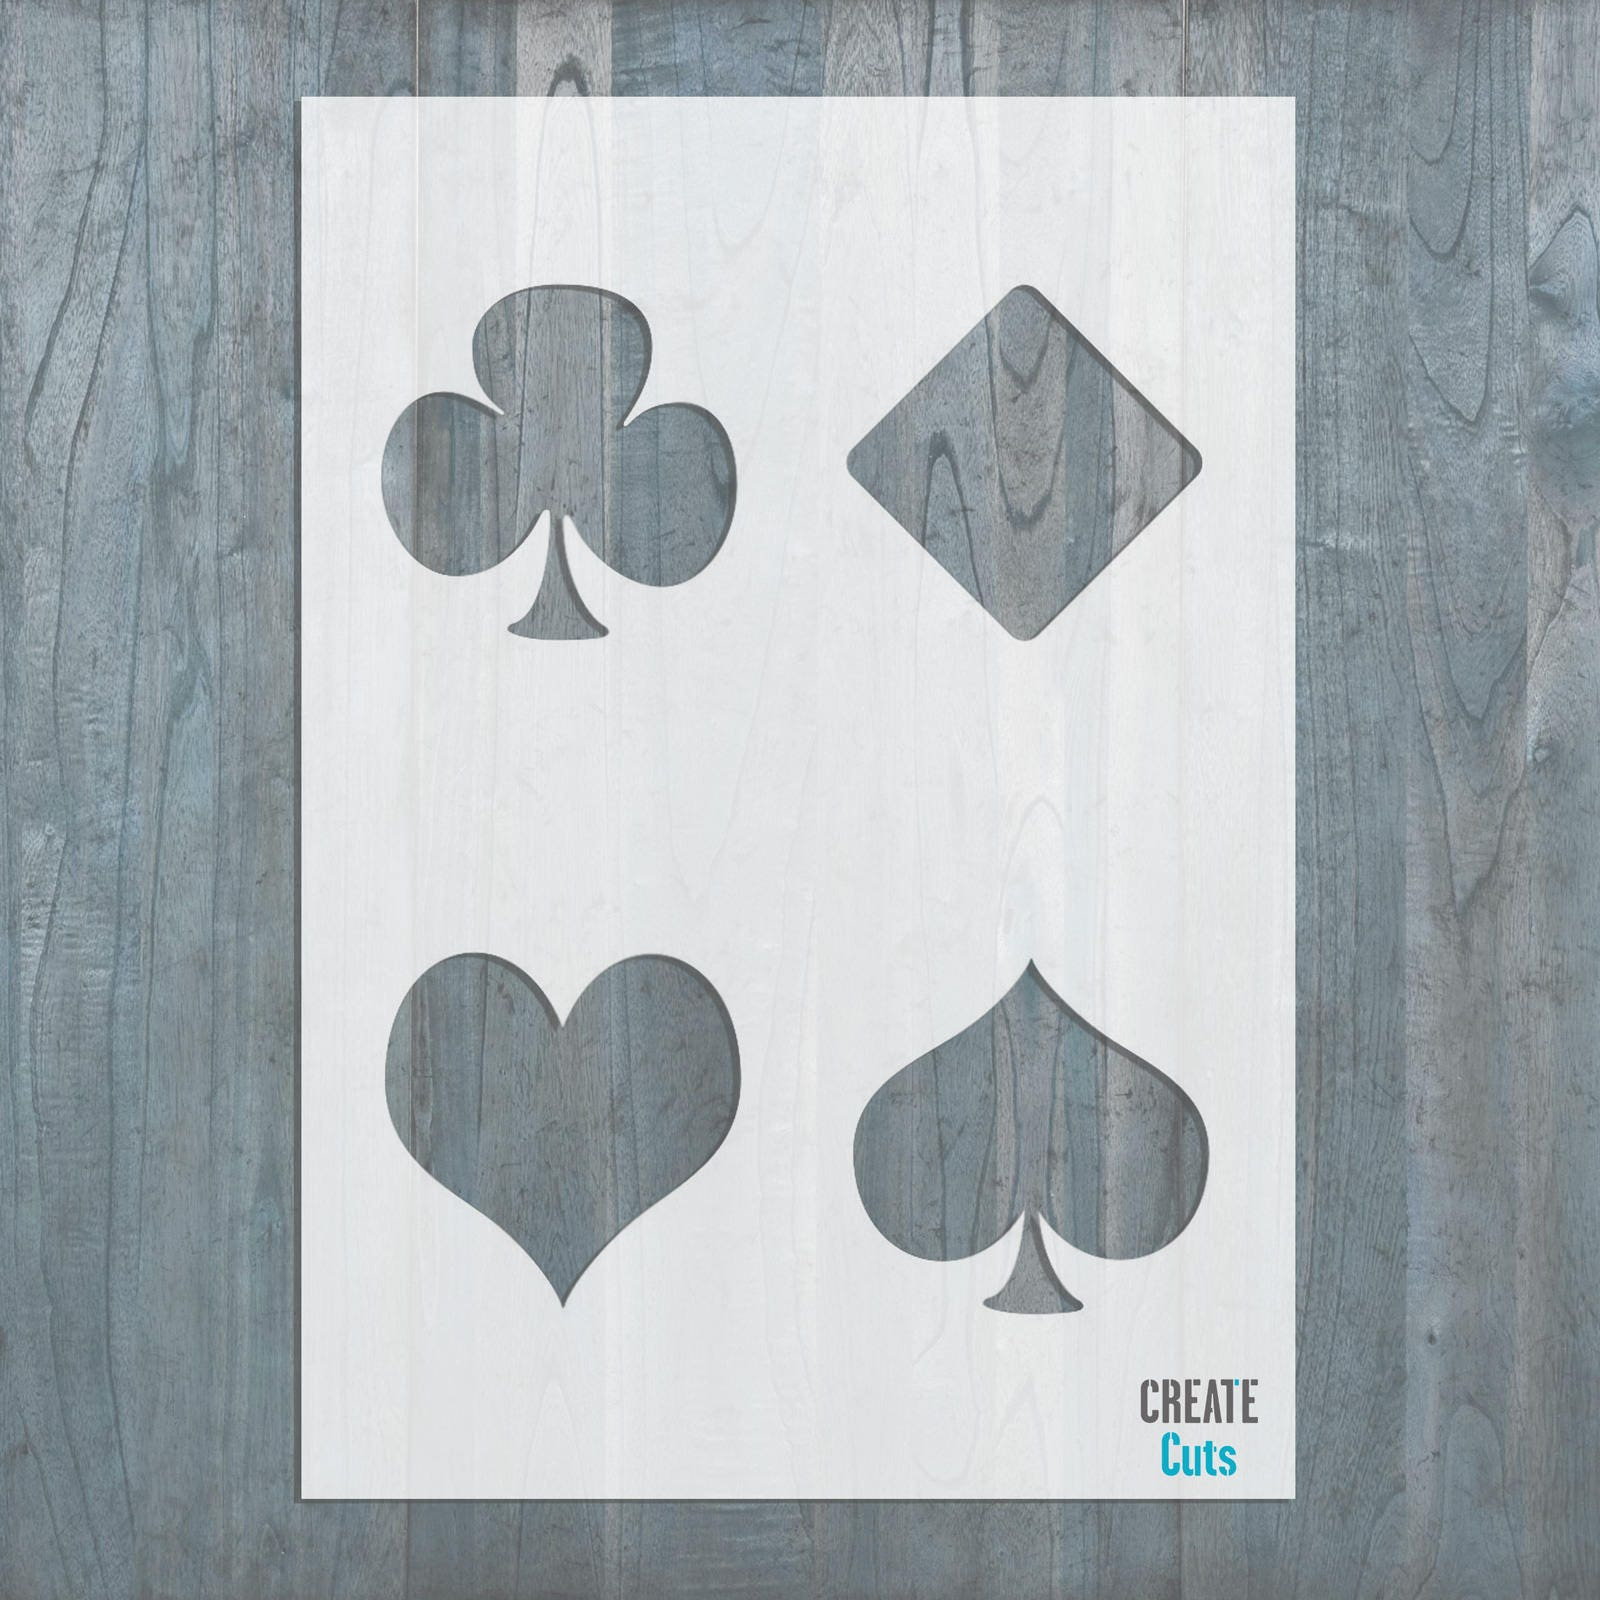 Playing poker cards stencil hearts spades diamonds clubs request a custom order and have something made just for you biocorpaavc Choice Image